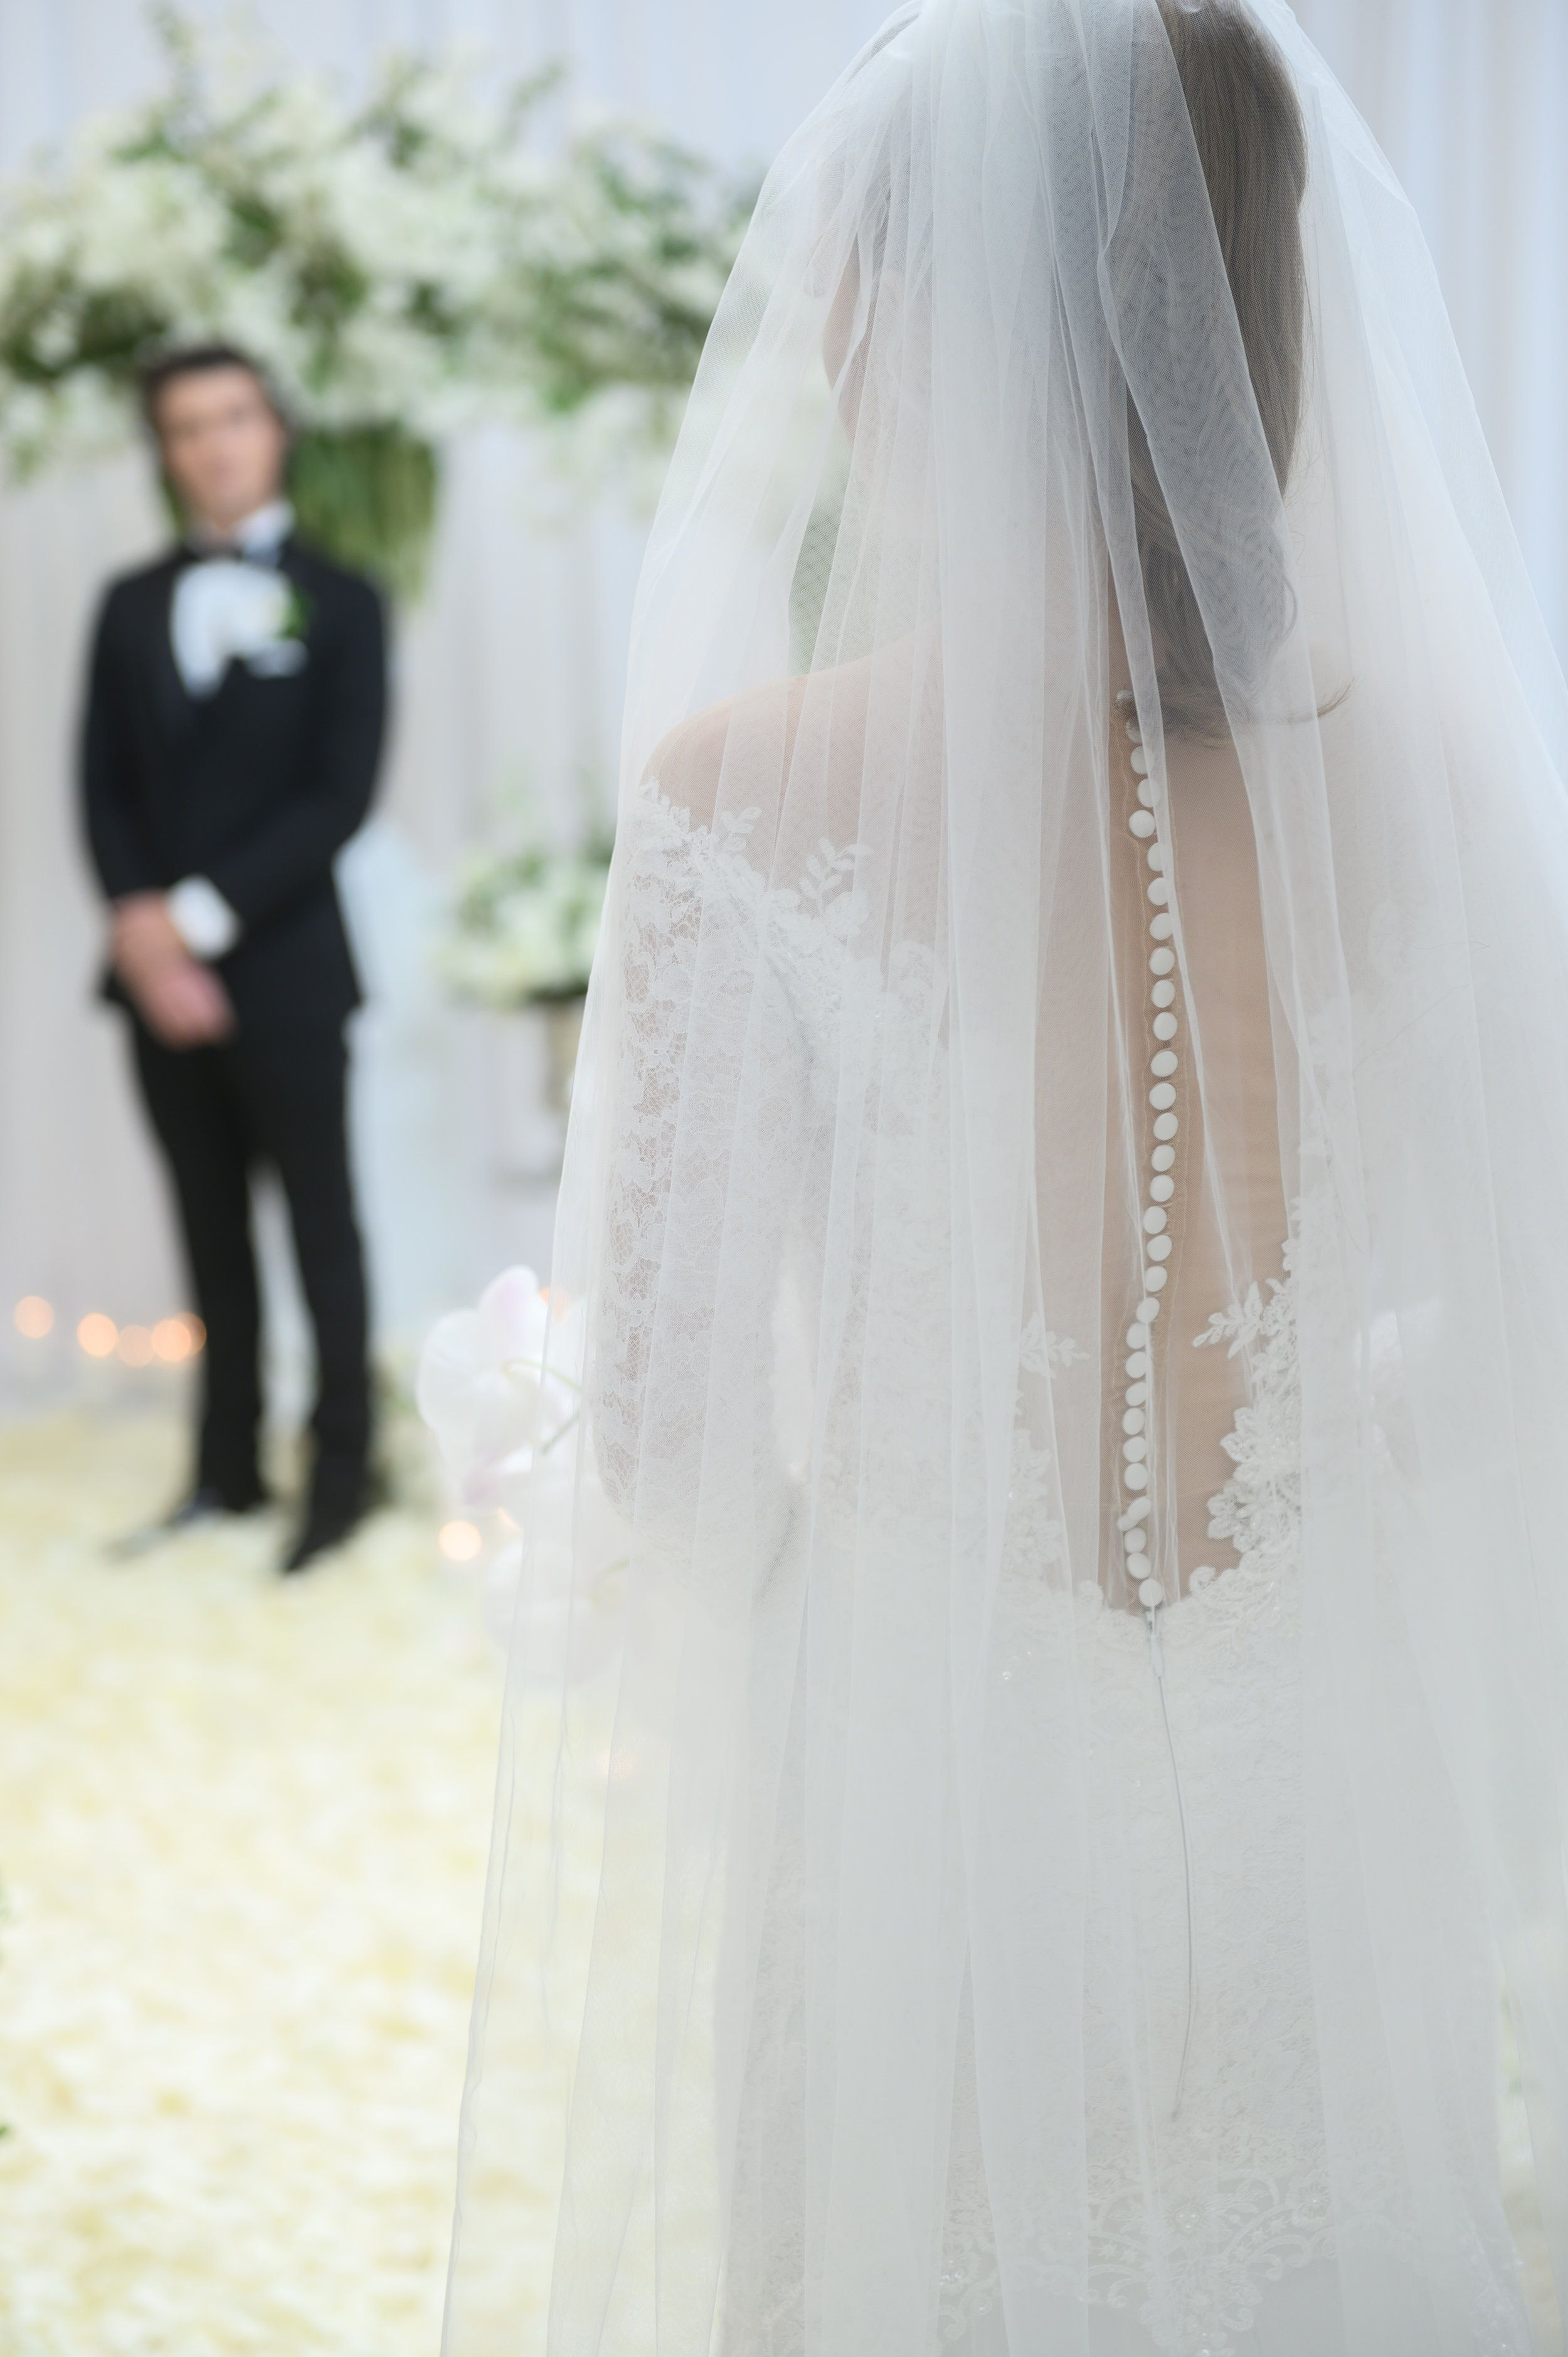 Www Andreaeppolitoevents Com 50 Shades Of Grey Wedding Styled Shoot Veil And Wedding Dress With Buttons Down Wedding Las Vegas Wedding Planner Vegas Wedding [ 3757 x 2500 Pixel ]